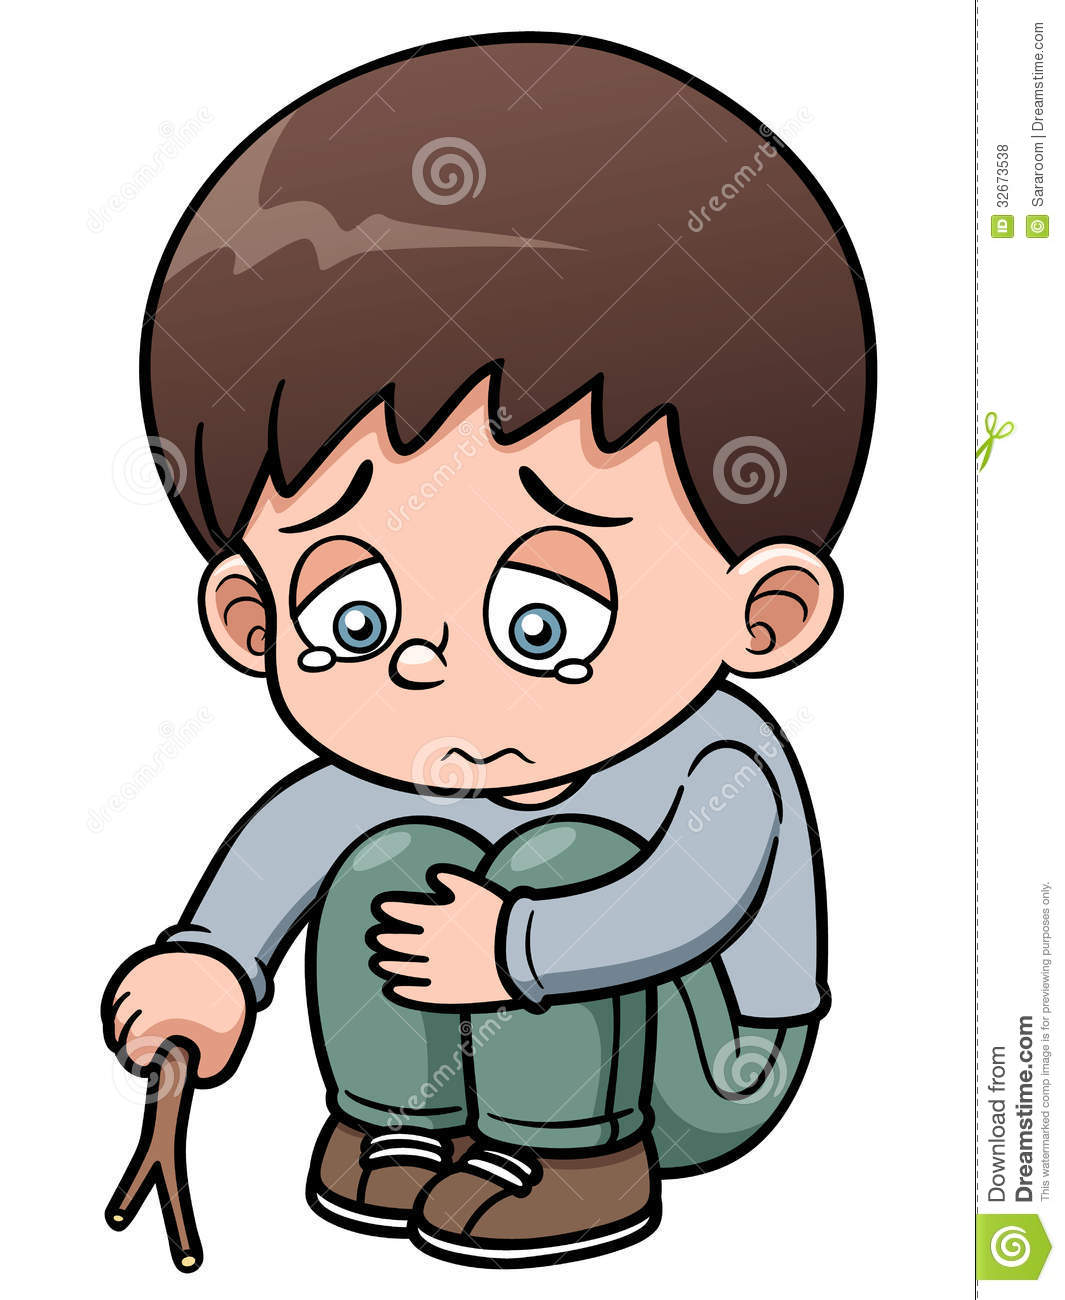 Boy alone clipart.